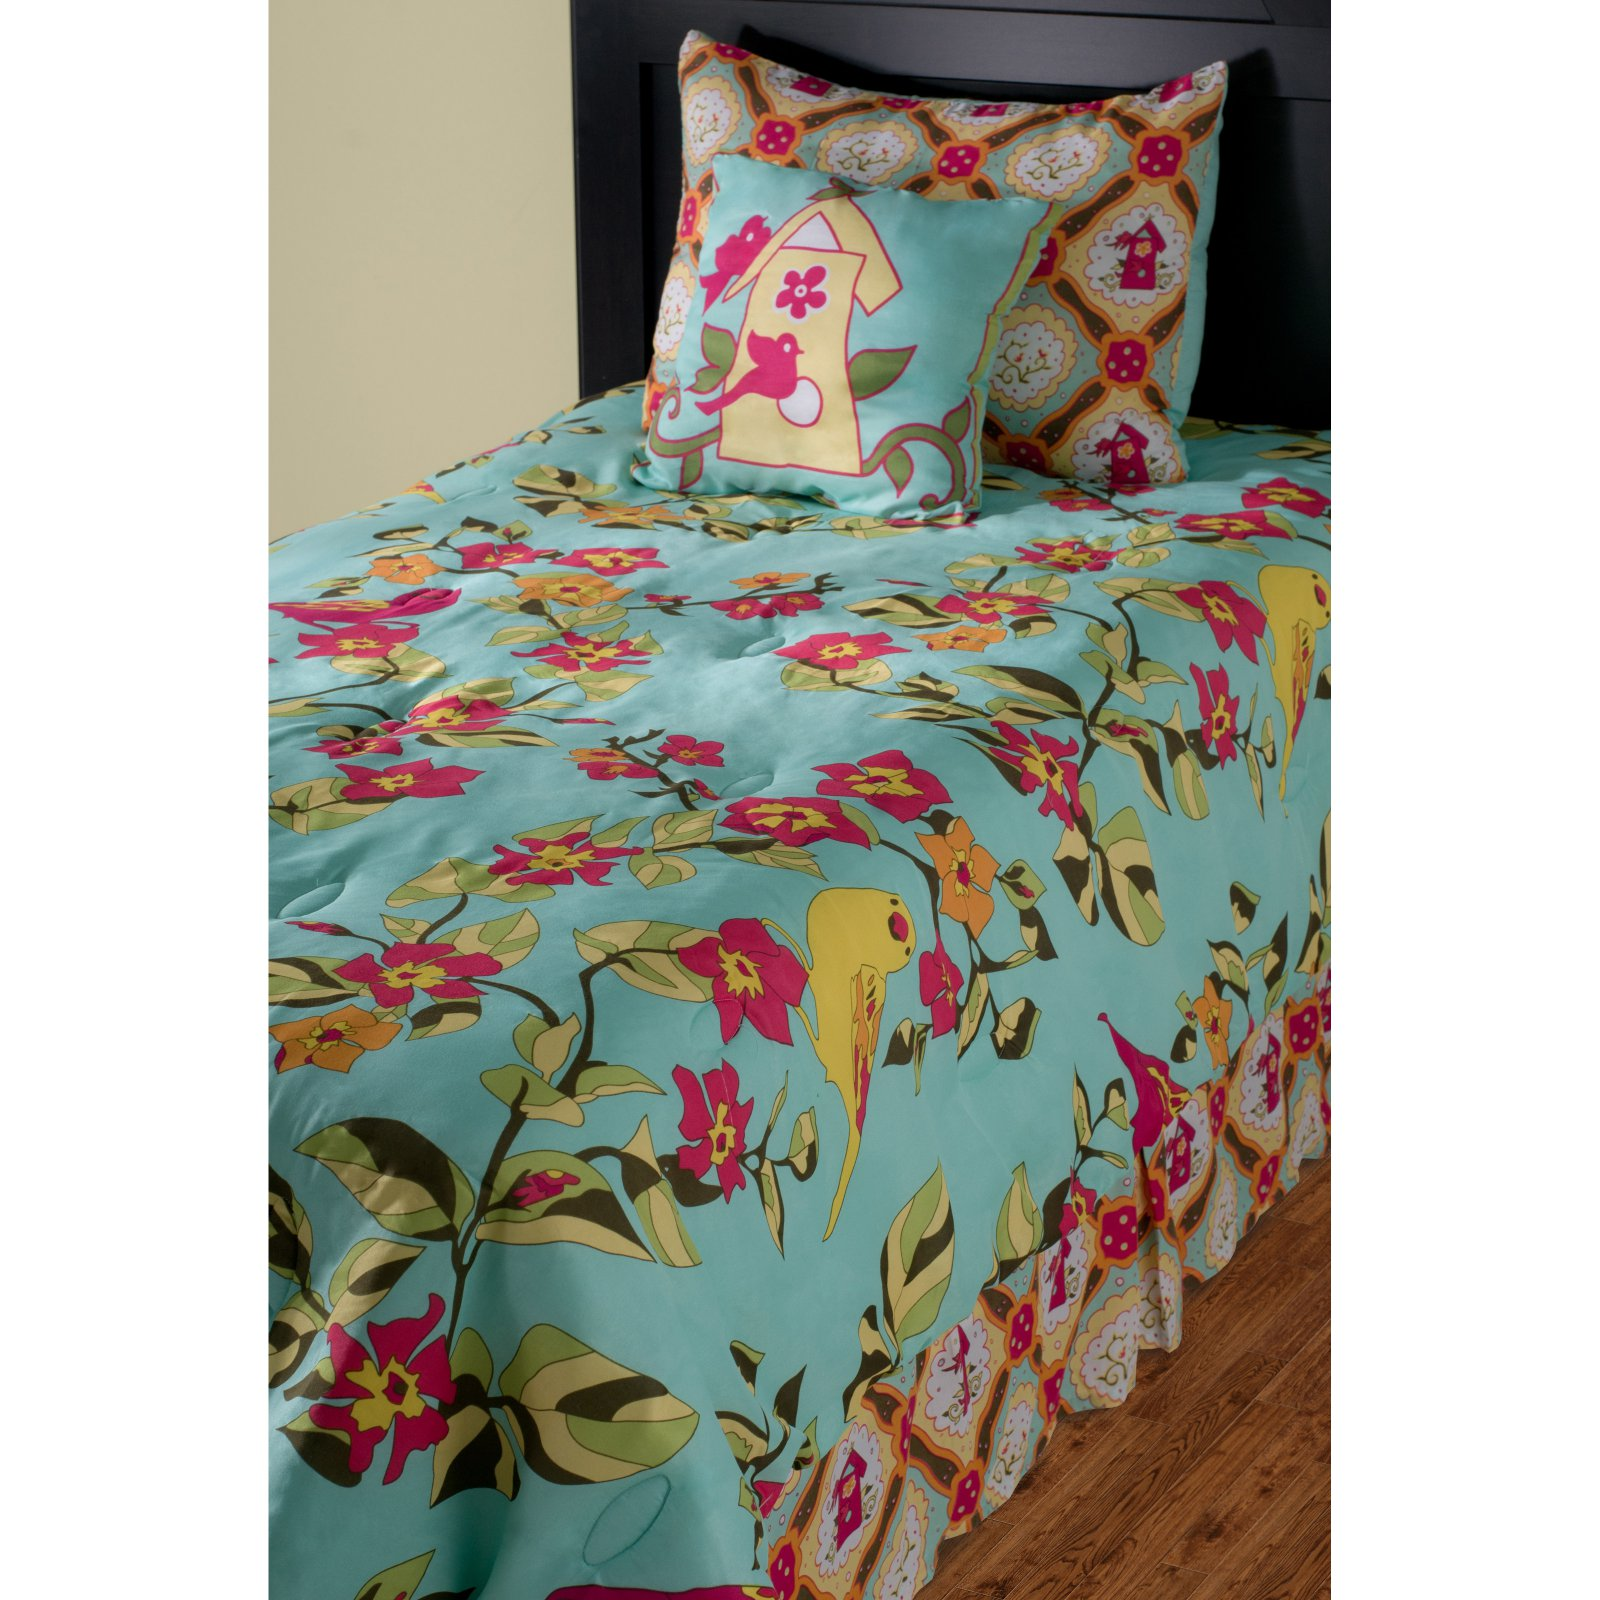 Rizzy Home Birds in Paradise Kids Comforter Bed Set